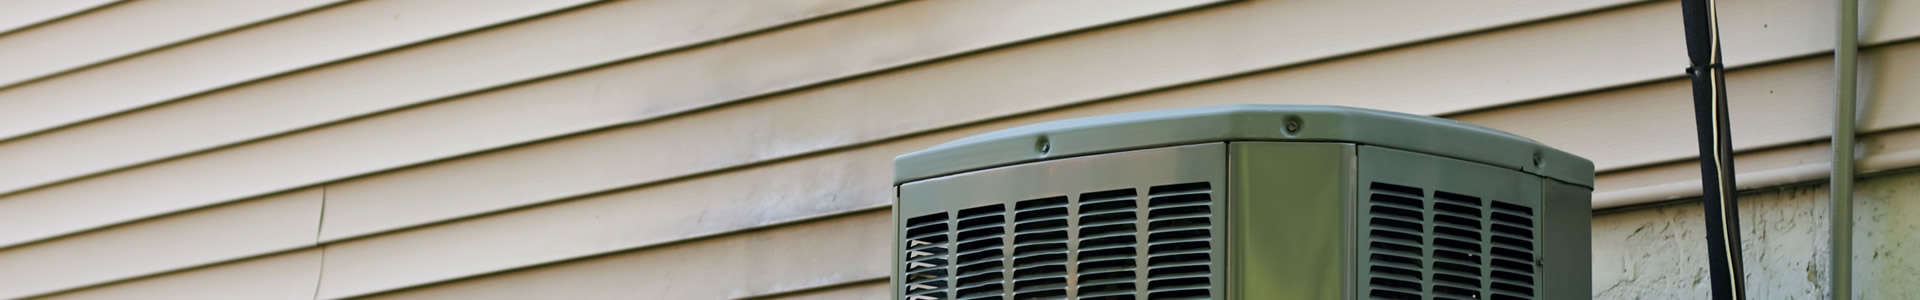 Best Hvac Systems 2020 Will Your Air Conditioning System Need to be Replaced by 2020